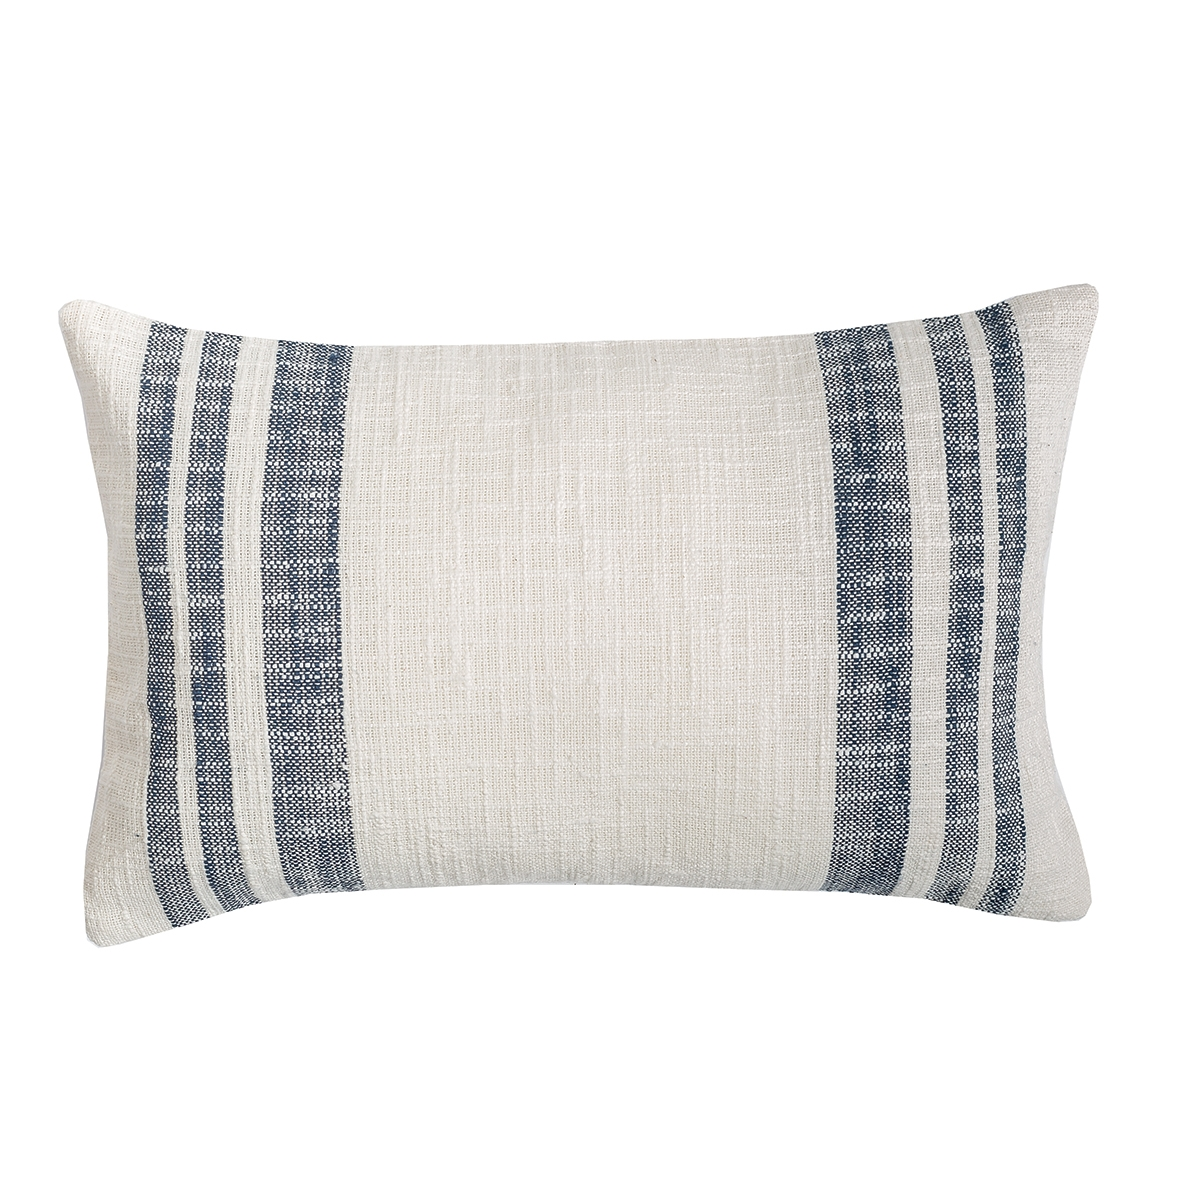 pillowcase woven how make boho pillow to diy weaving of a yarn throw pillows covers out